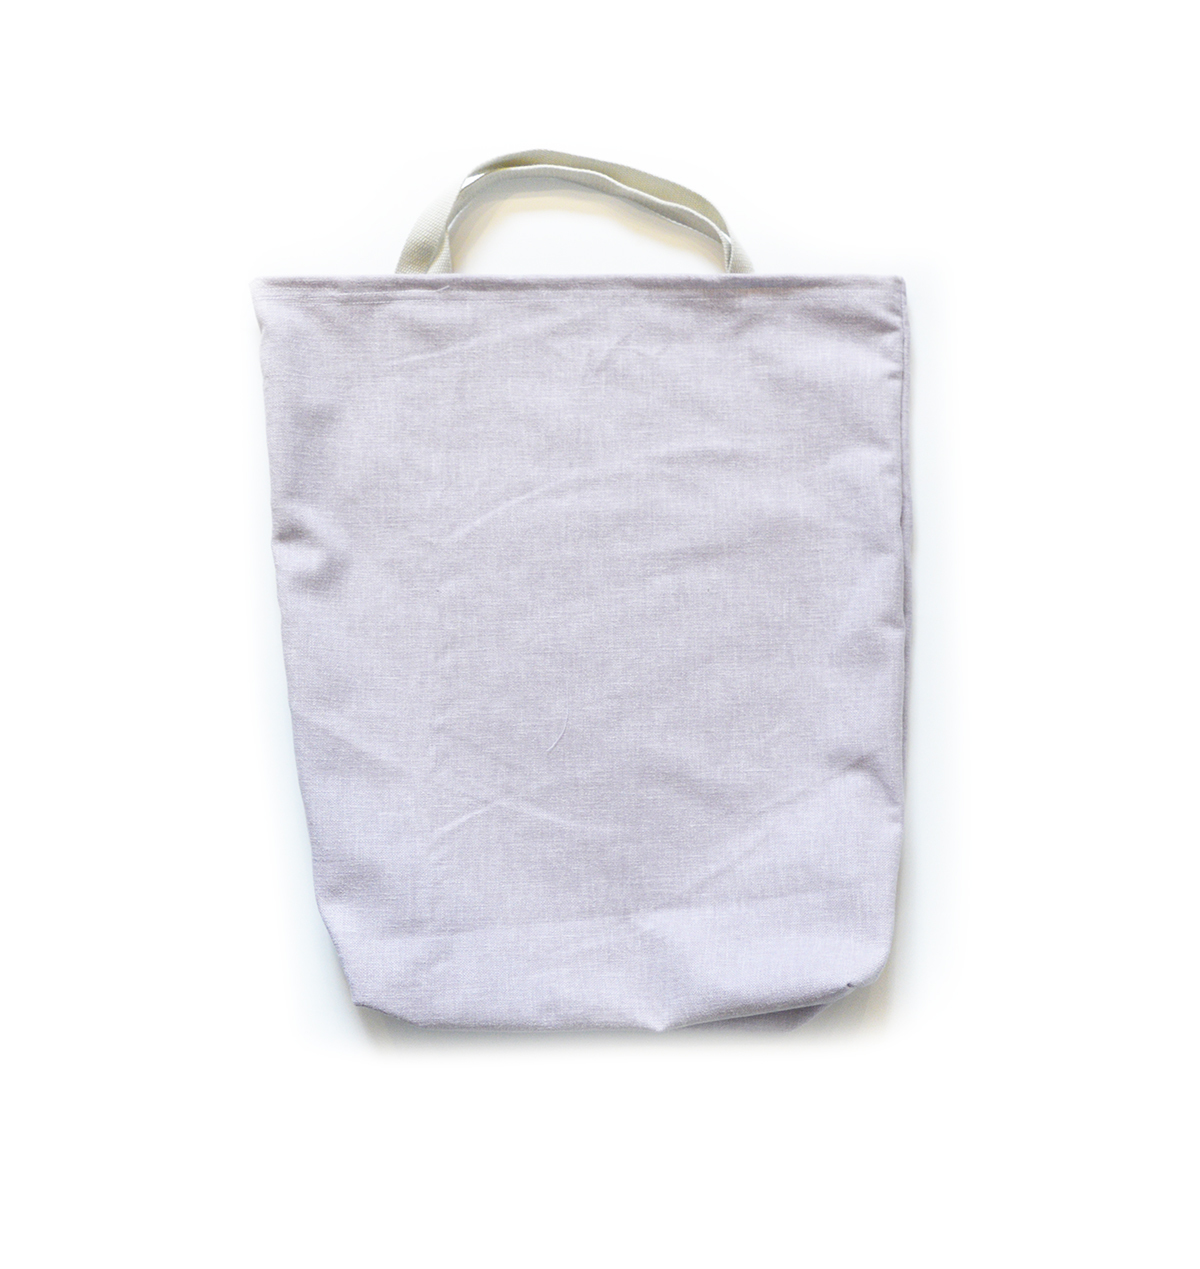 Simply Good™ Reusable Grocery Tote Bag 00521